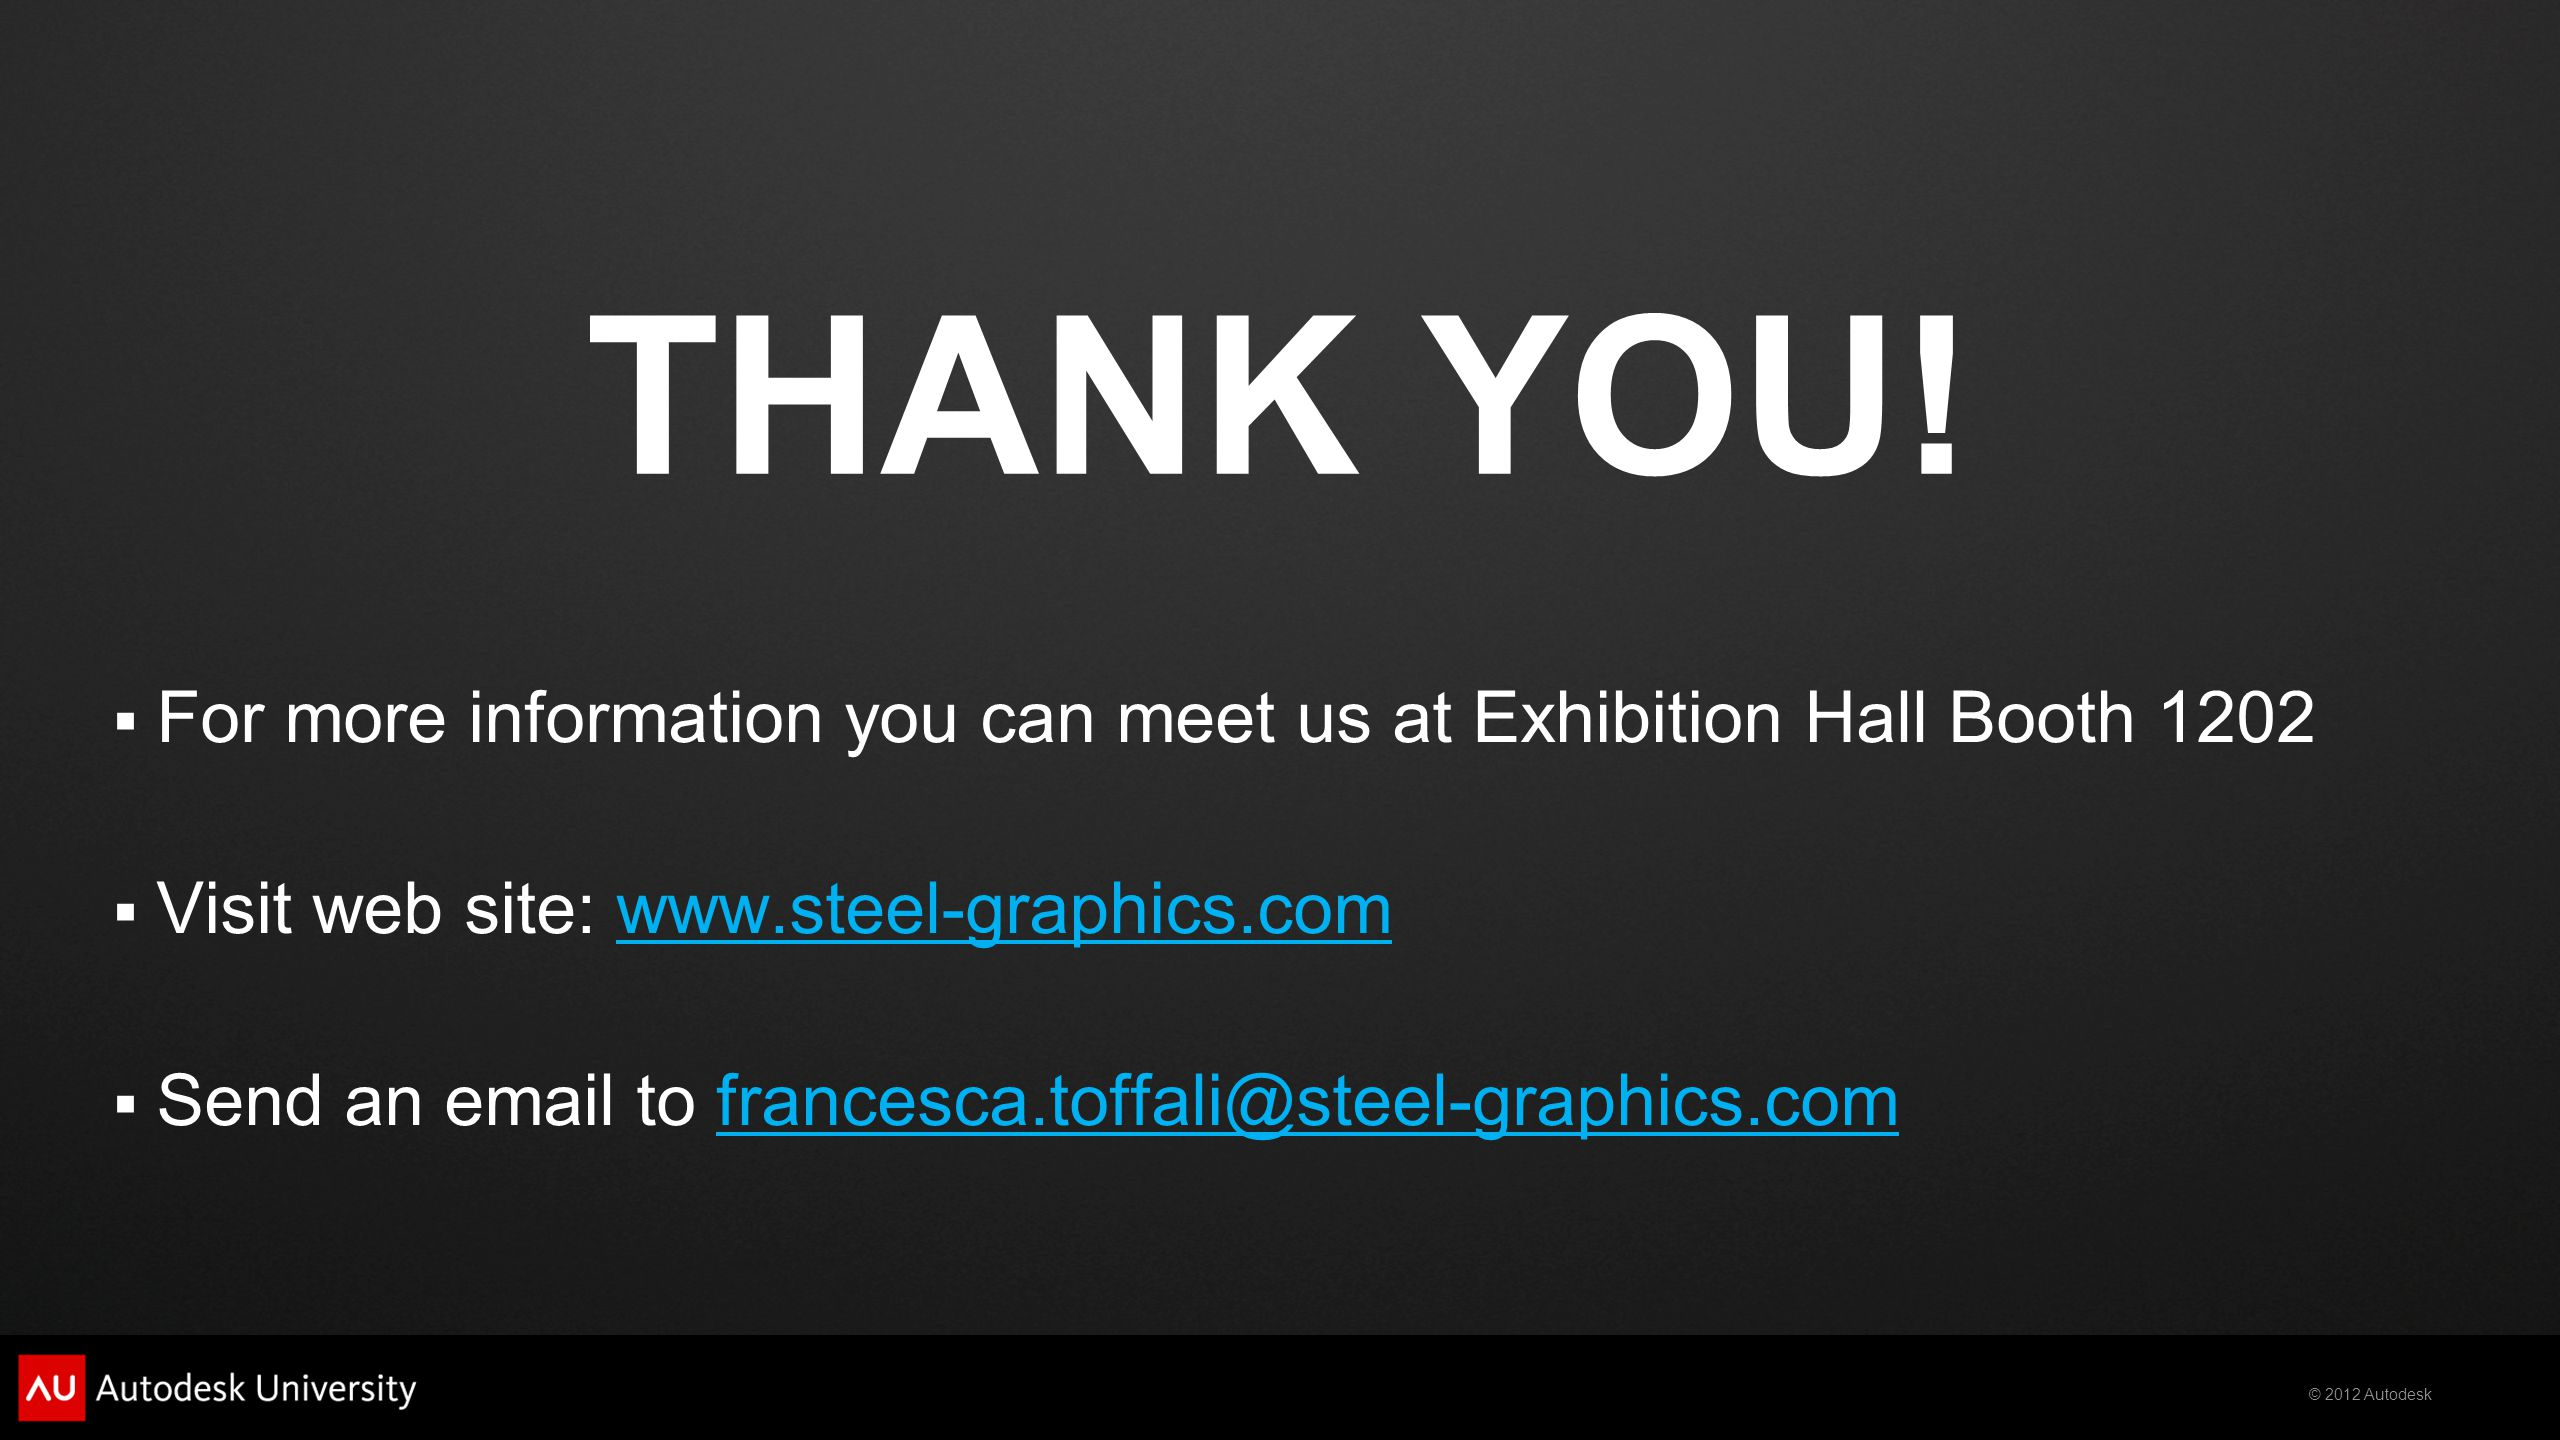 THANK YOU! For more information you can meet us at Exhibition Hall Booth 1202. Visit web site: www.steel-graphics.com.